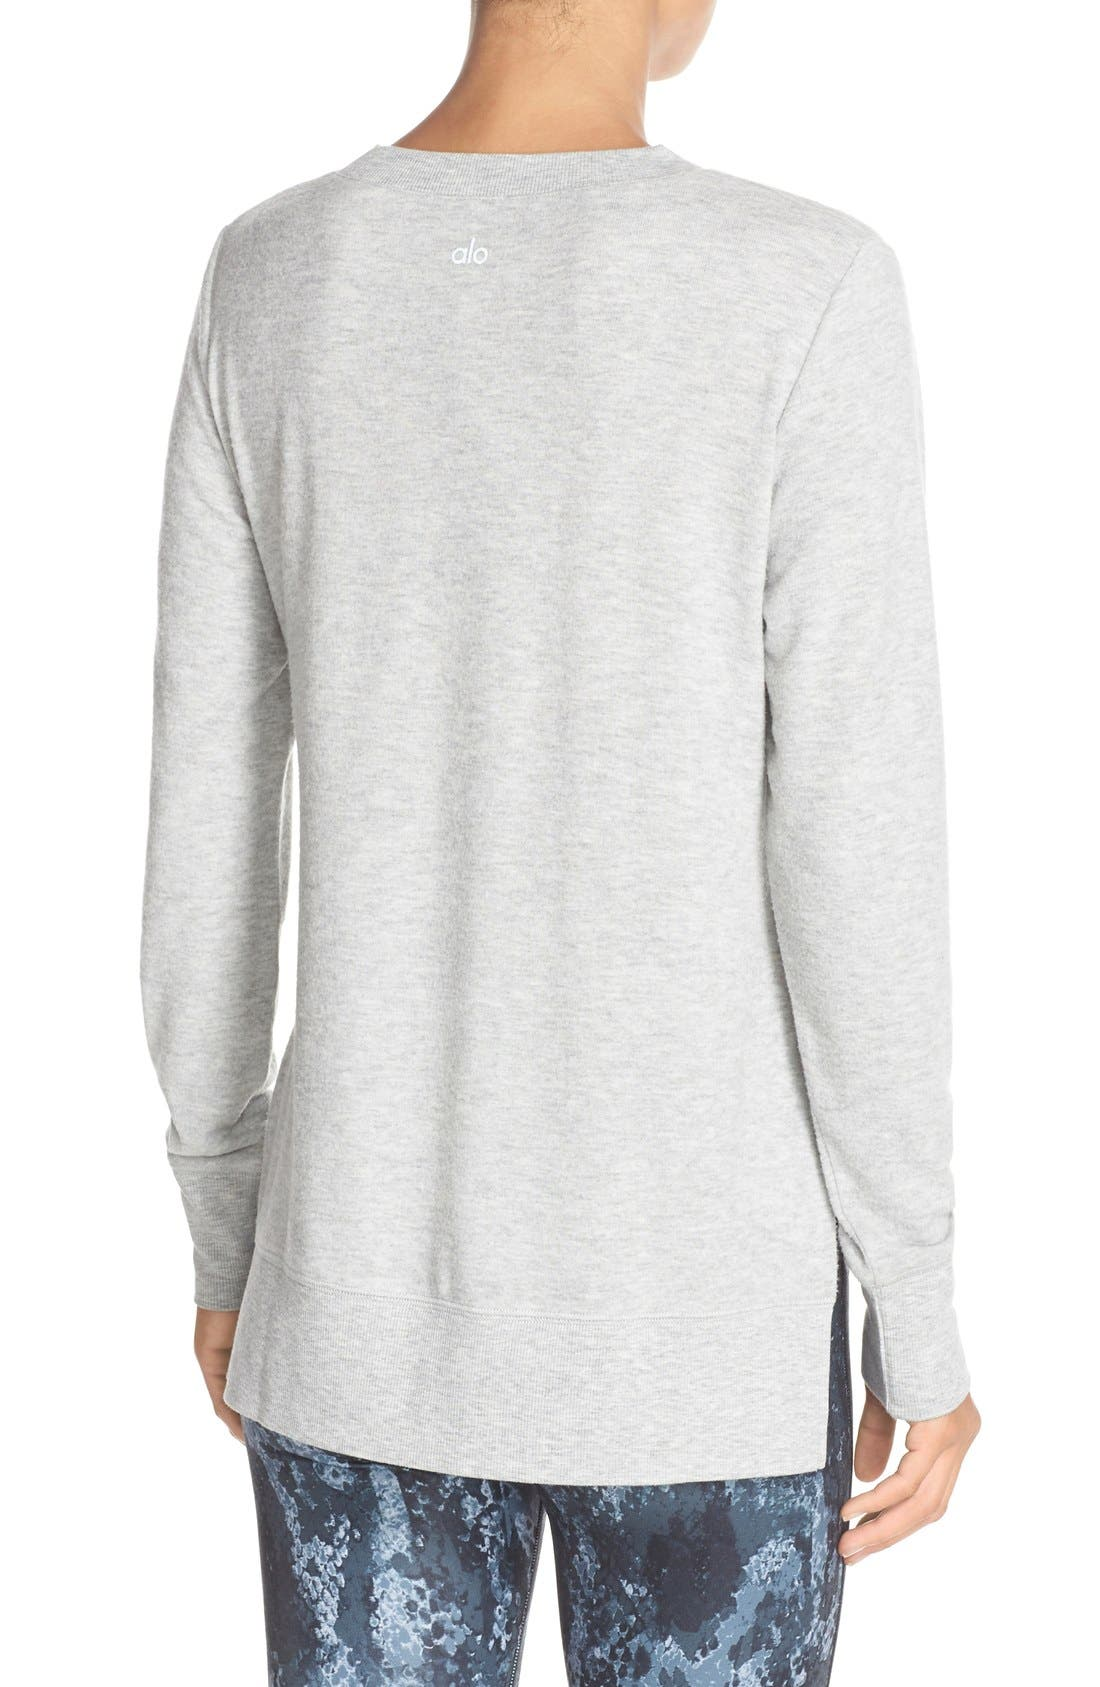 'Glimpse' Long Sleeve Top,                             Alternate thumbnail 2, color,                             Vapor Grey Heather